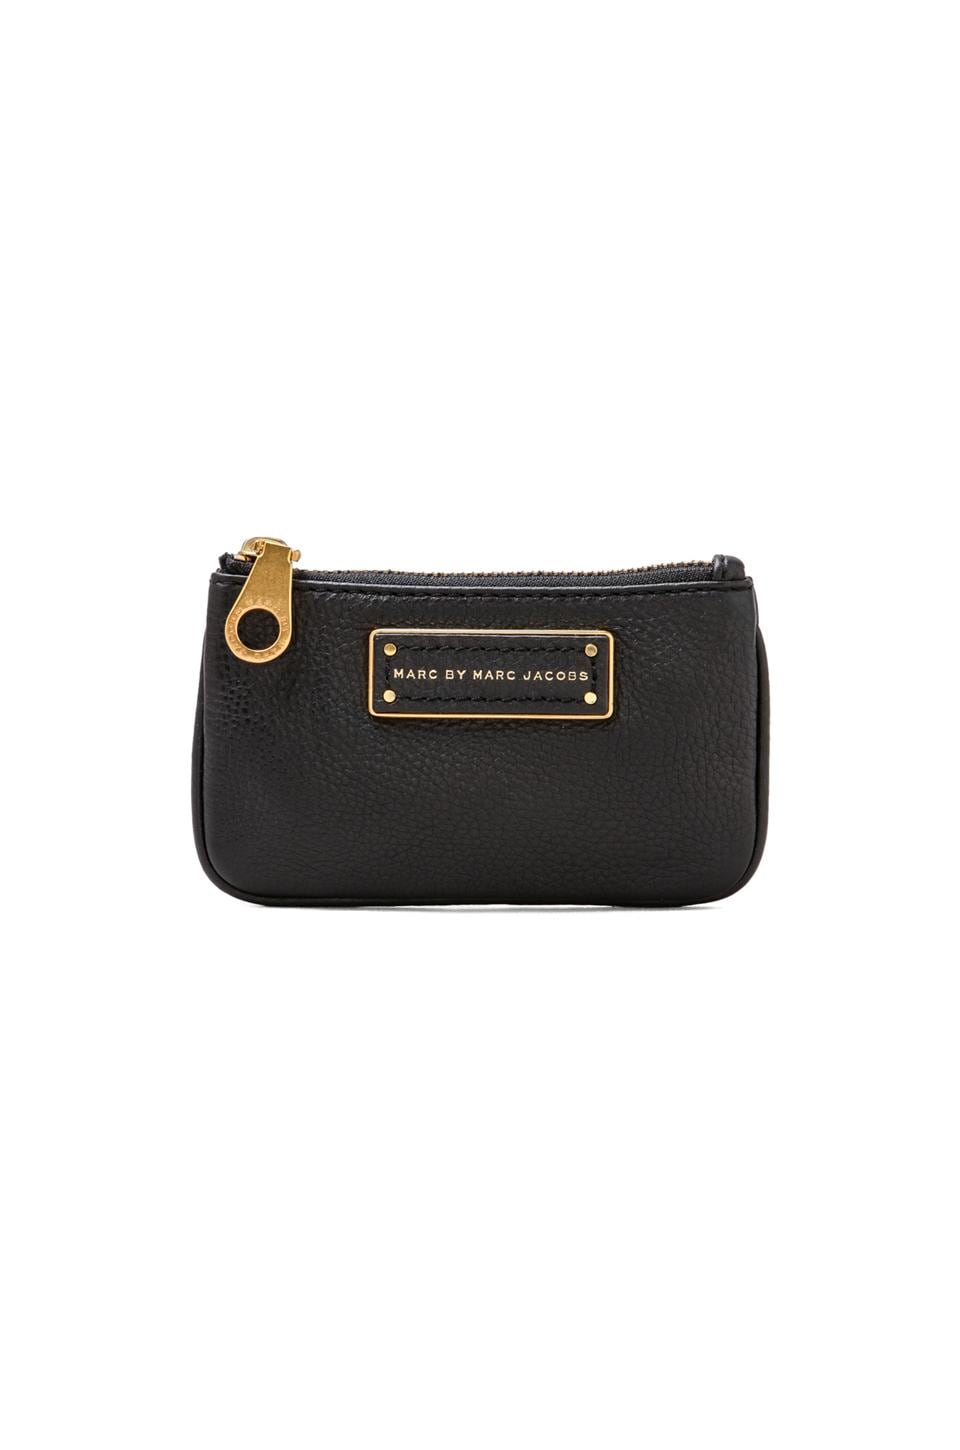 Marc by Marc Jacobs Key Pouch in Black